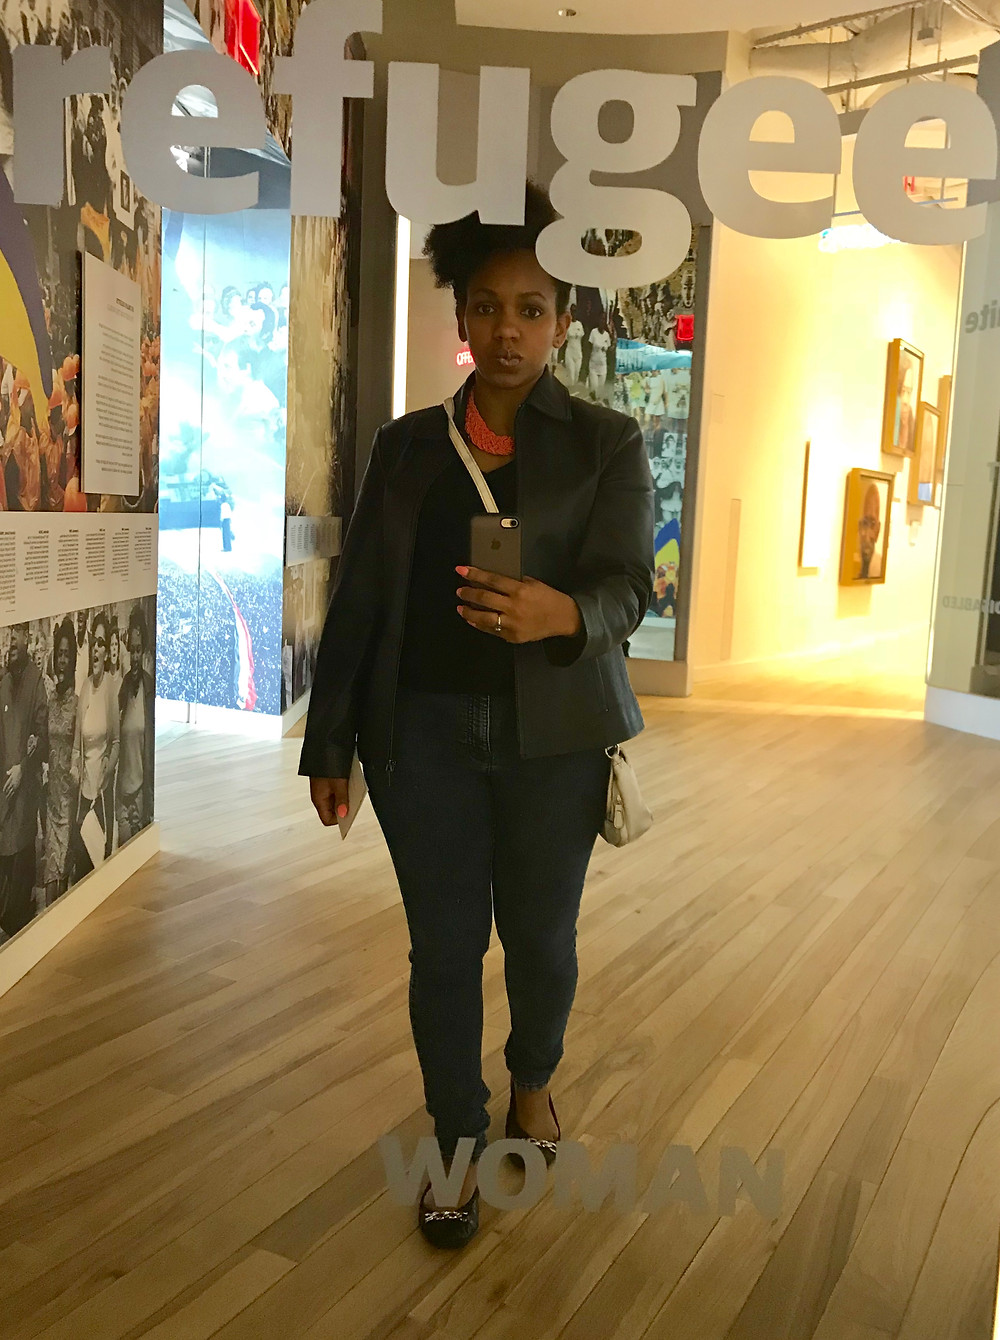 Me in front of Refugee Mirror at Center for Civil and Human Rights